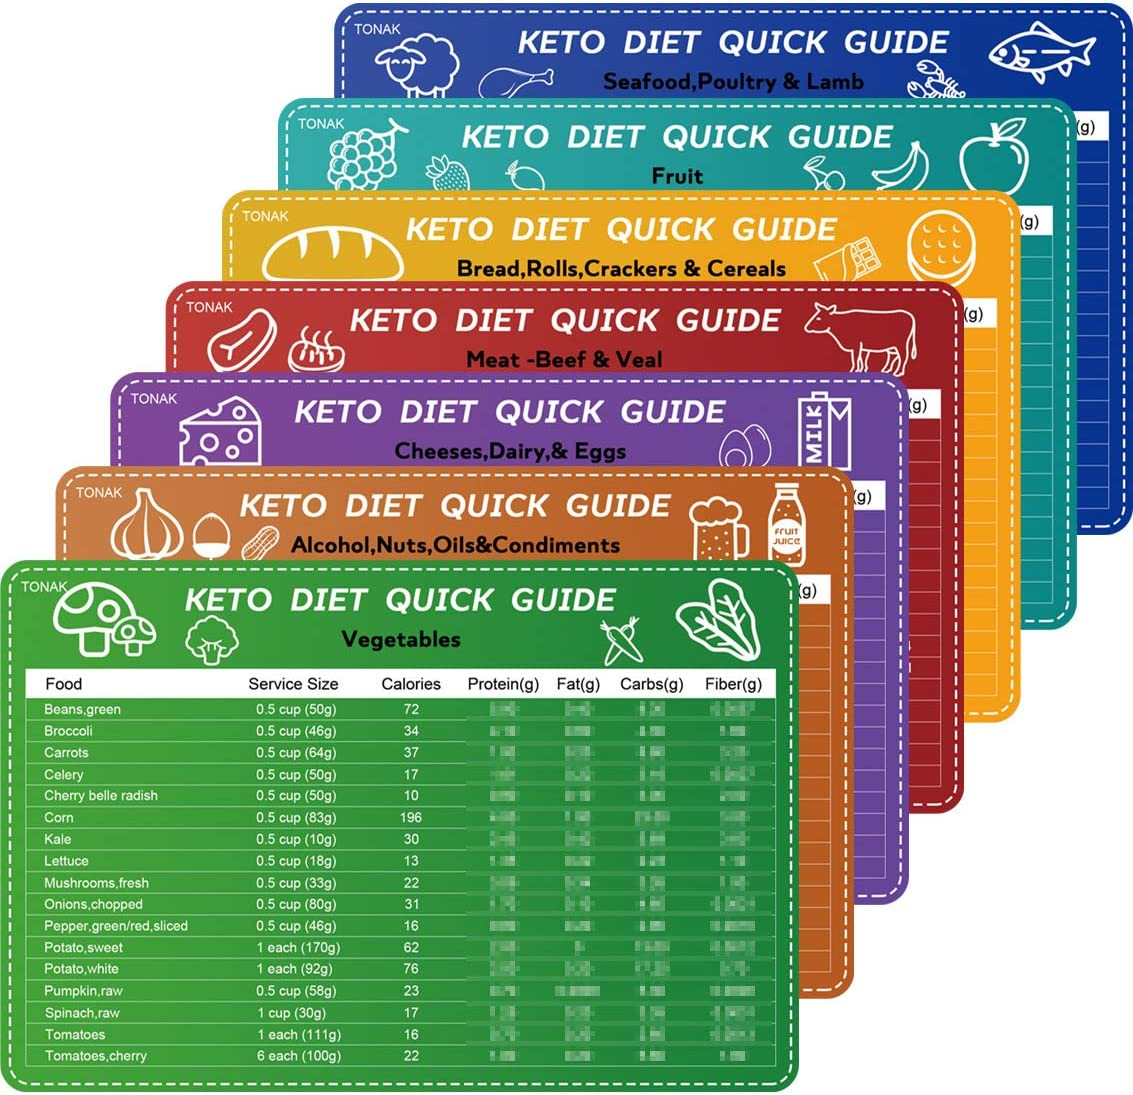 Keto Cheat Sheet Magnets,Keto Diet Magnets,Quick Guide Fridge Magnet Reference Charts